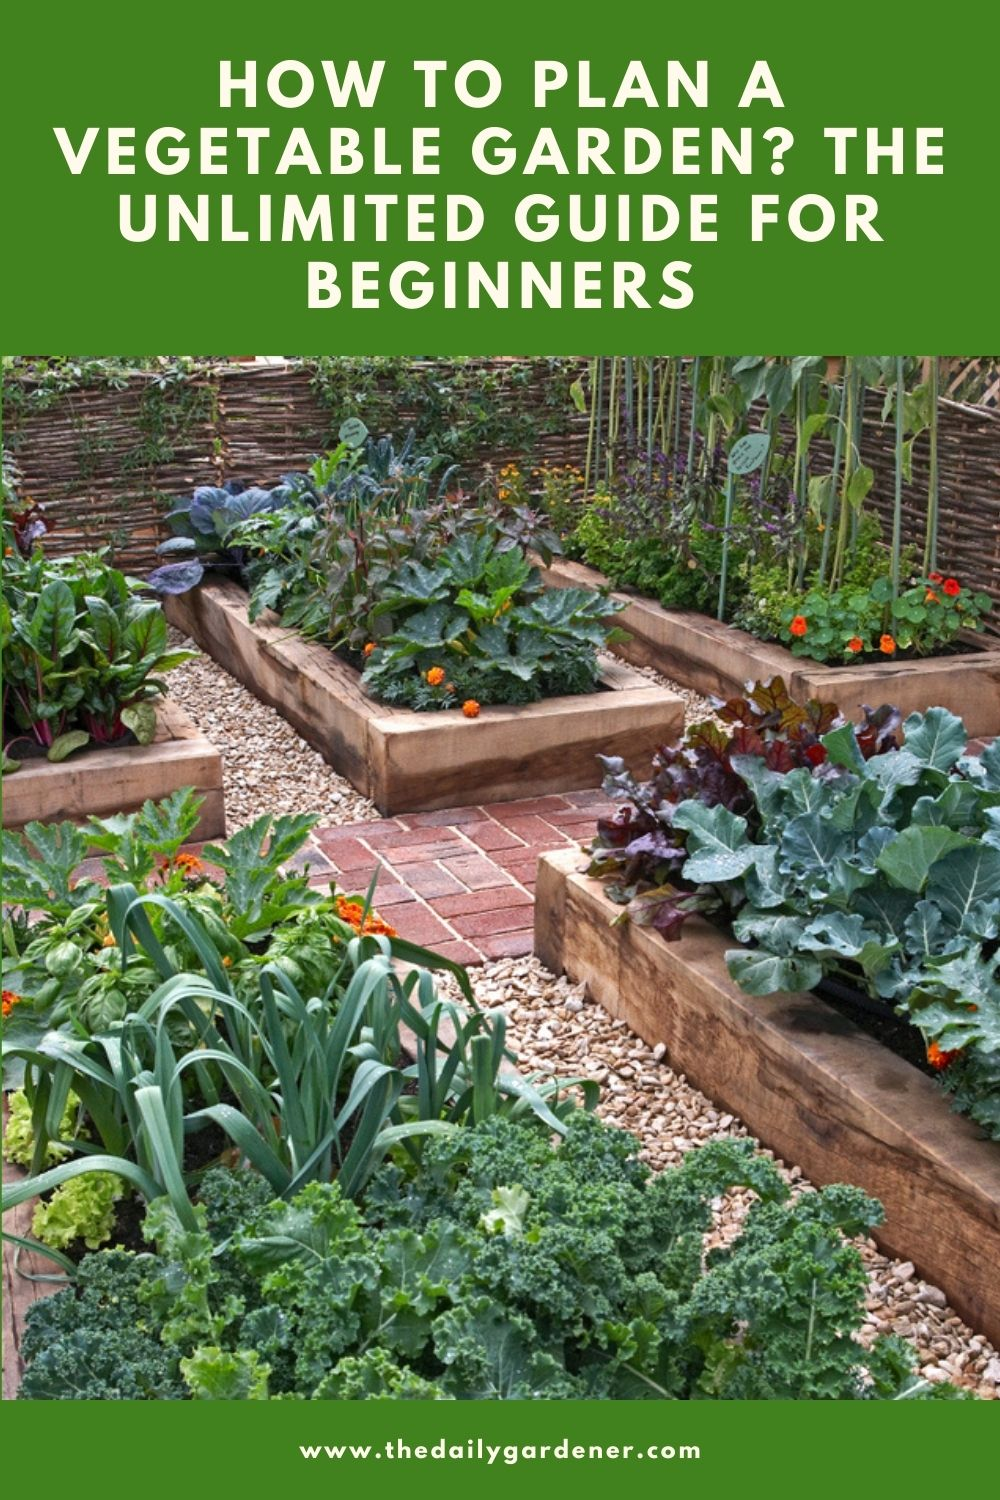 How to Plan a Vegetable Garden The Unlimited Guide for Beginners 2